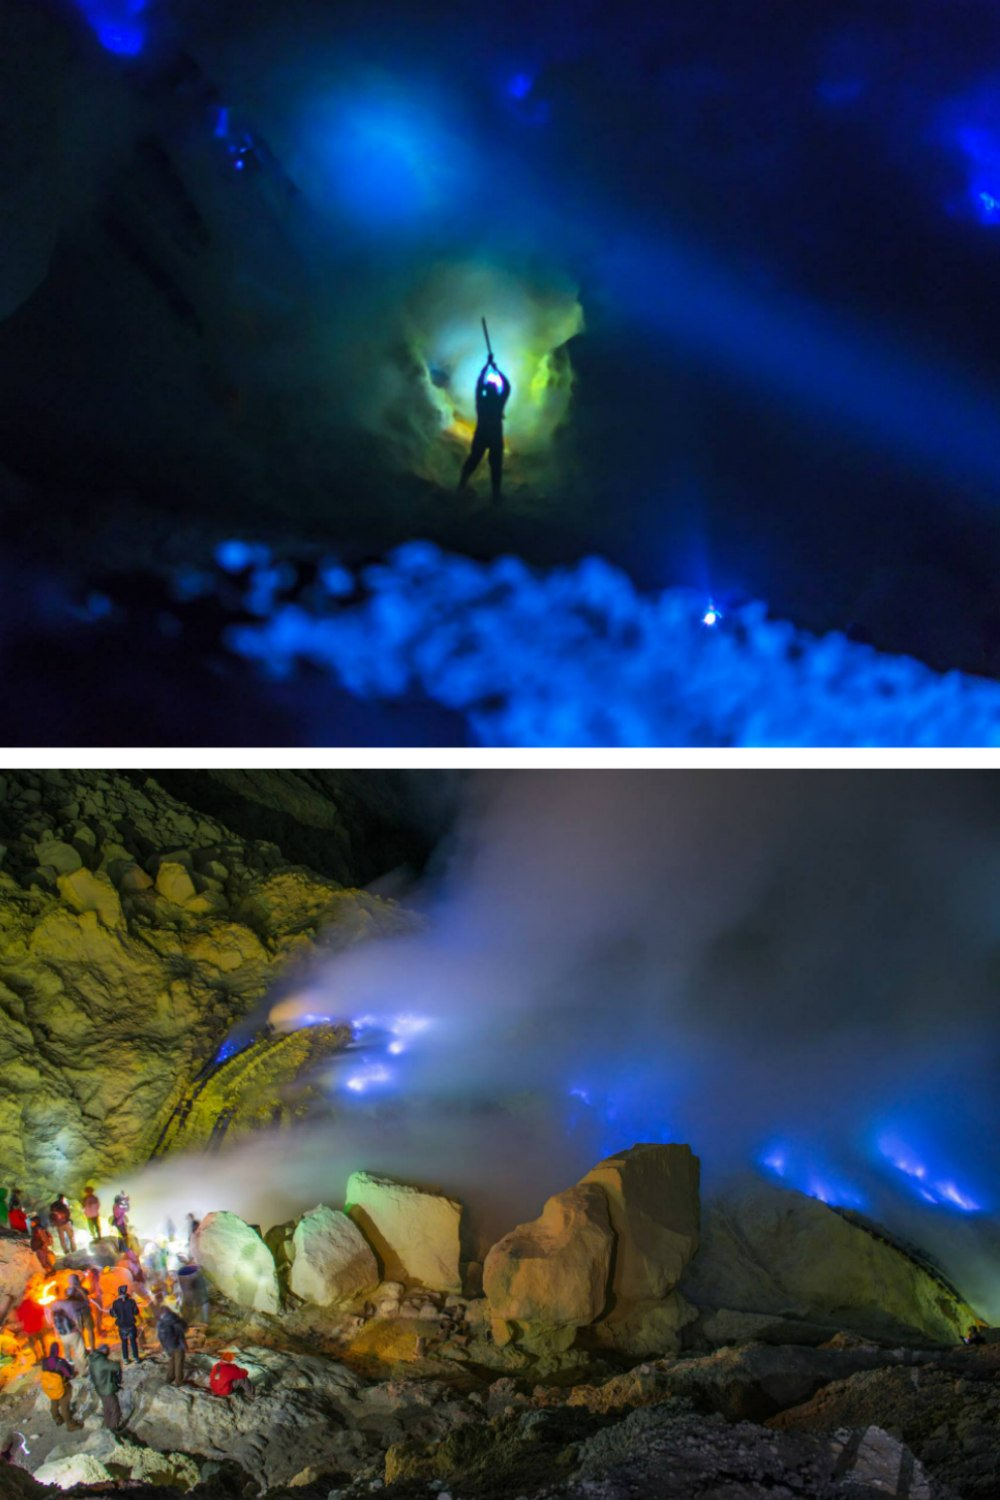 Blue Fire Kawah Ijen Volcano Indonesia Photography - Best Places to Visit in Indonesia